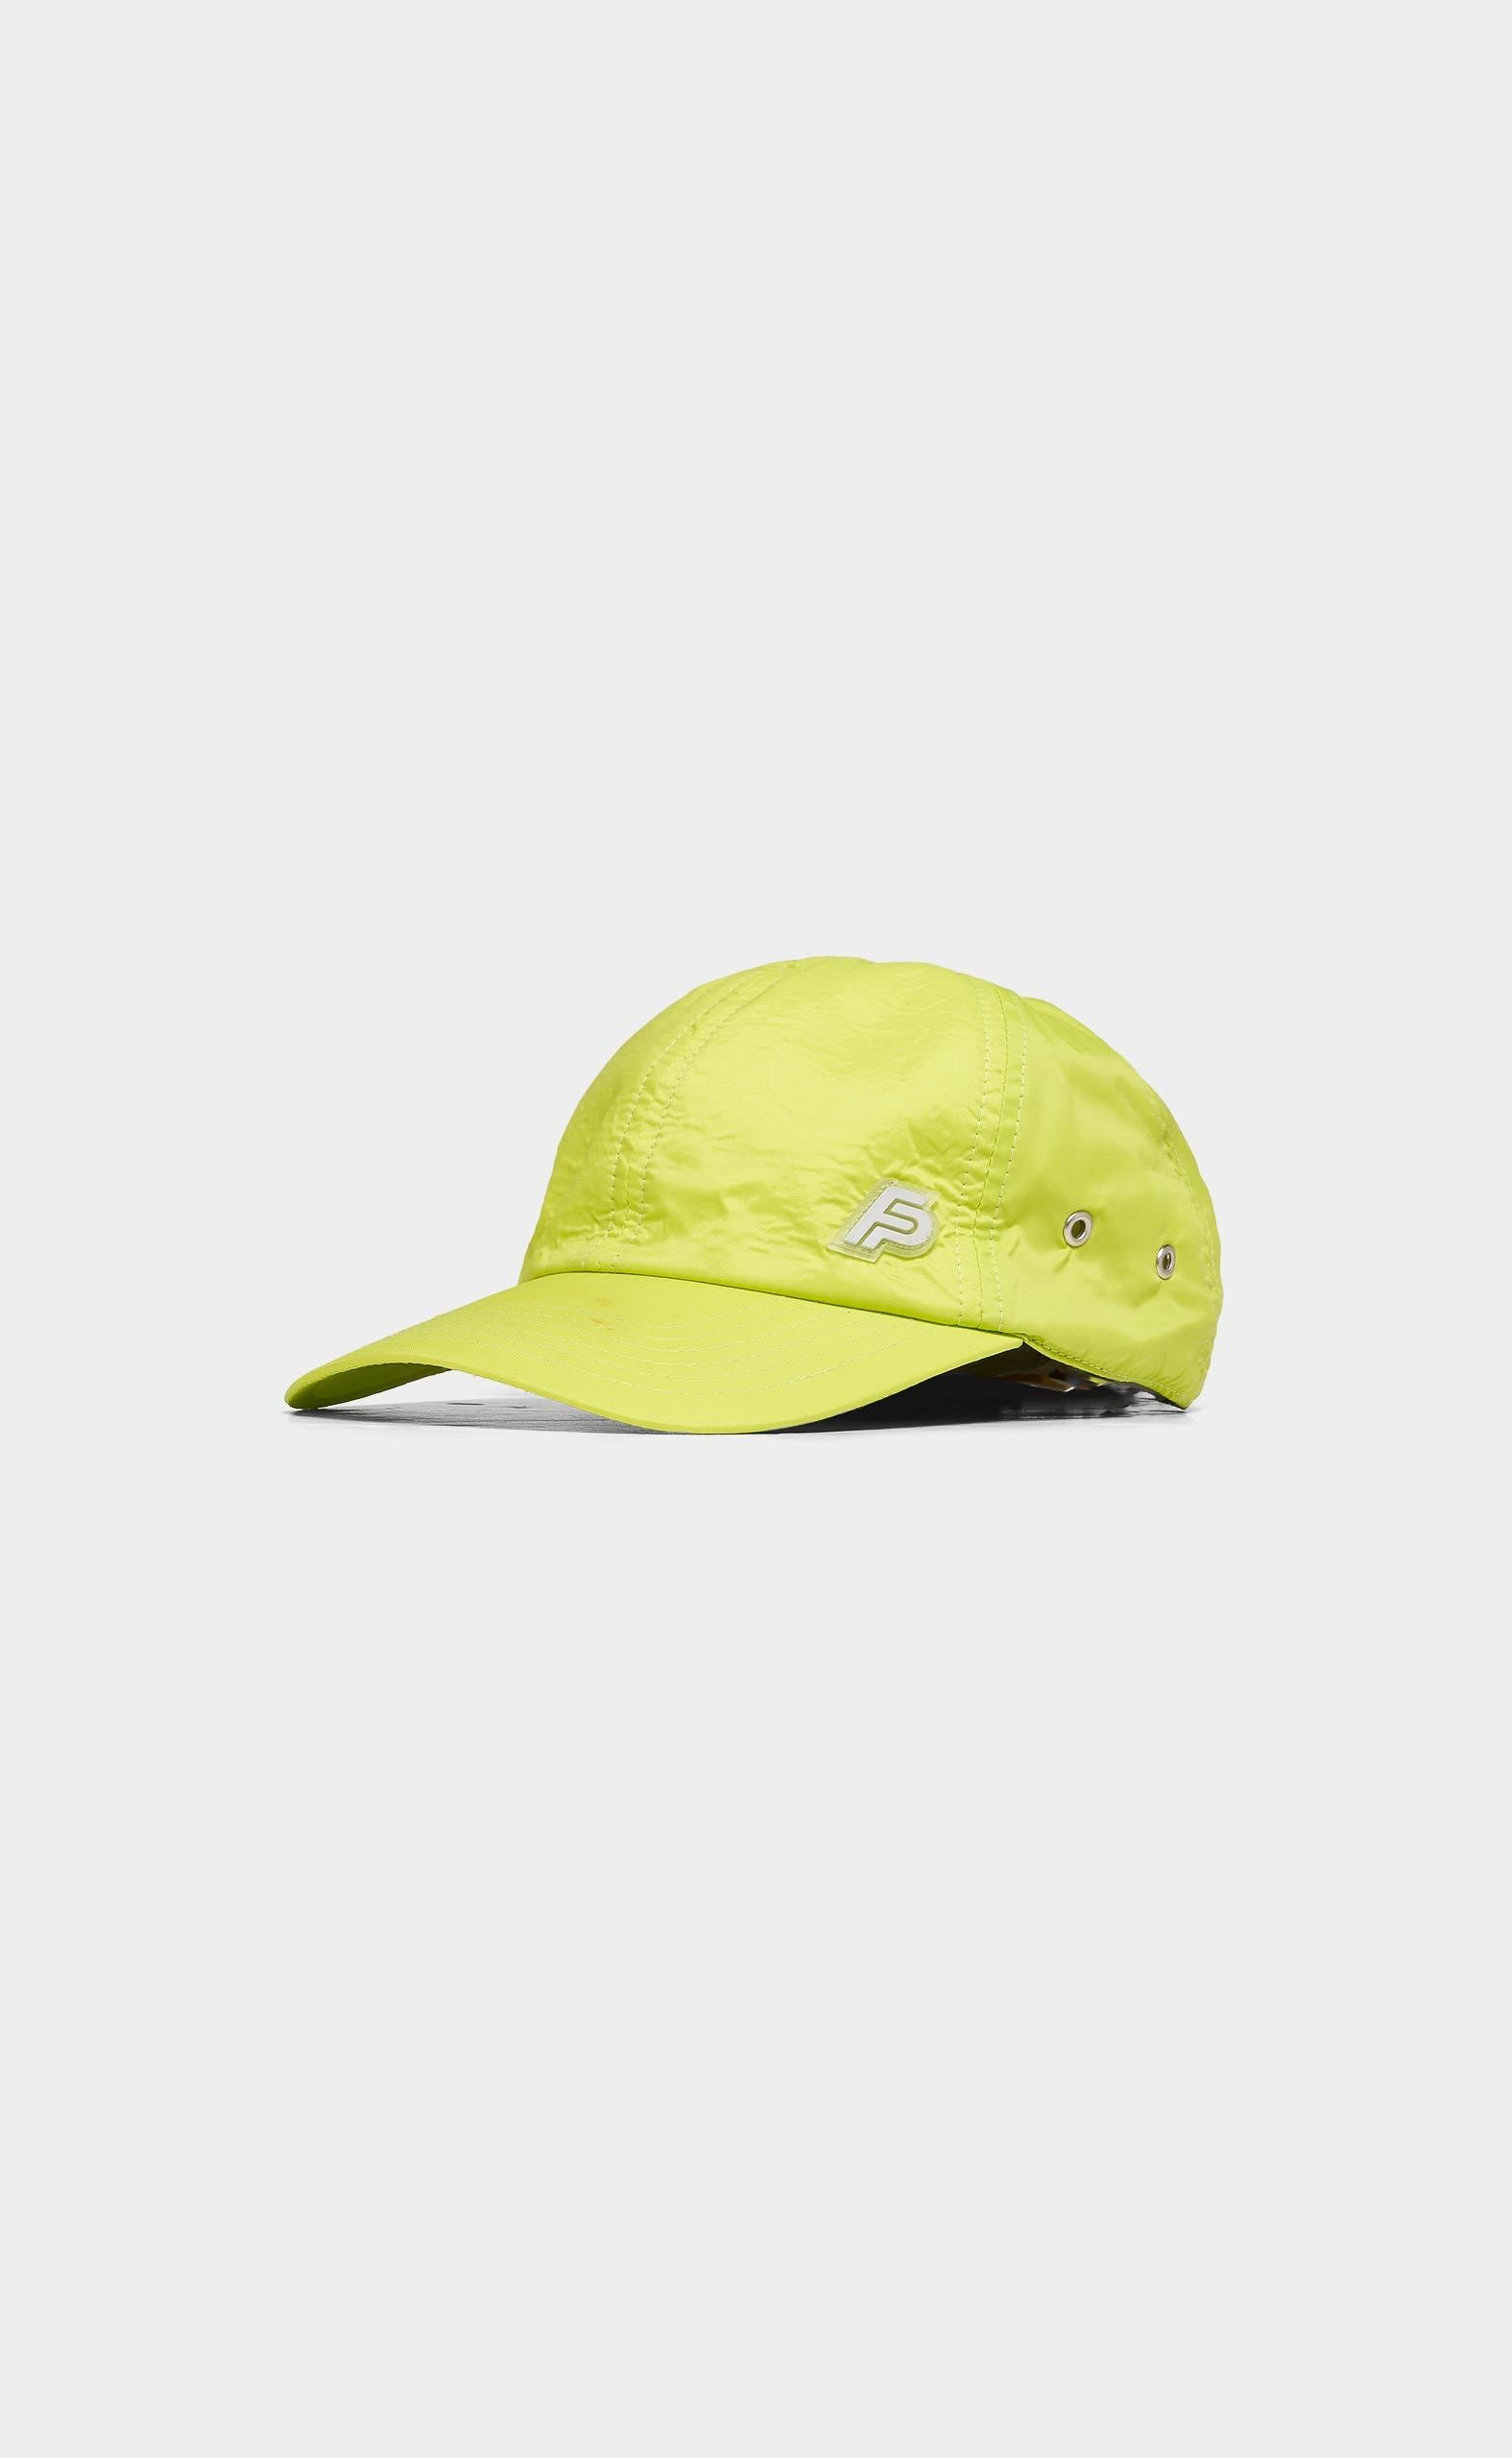 Cap Lime - women